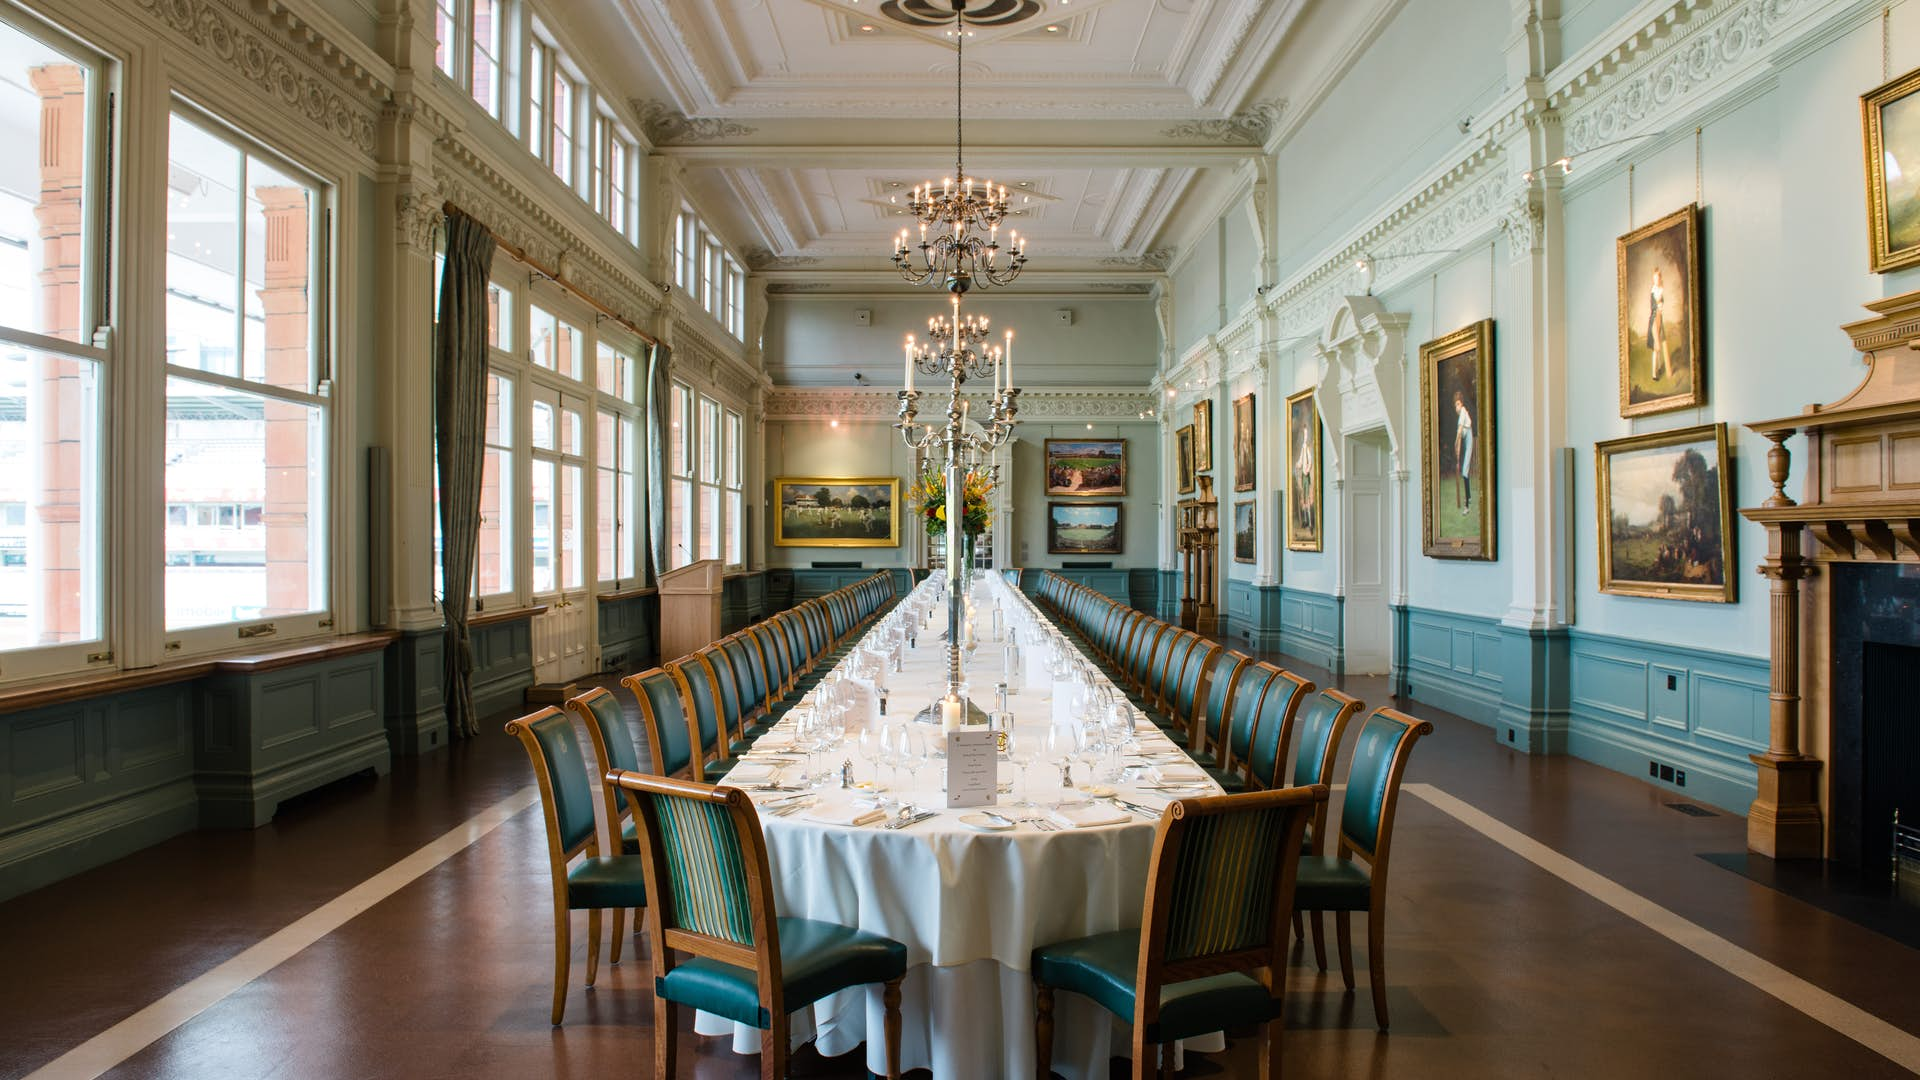 The Long Room, Lord's Cricket Ground